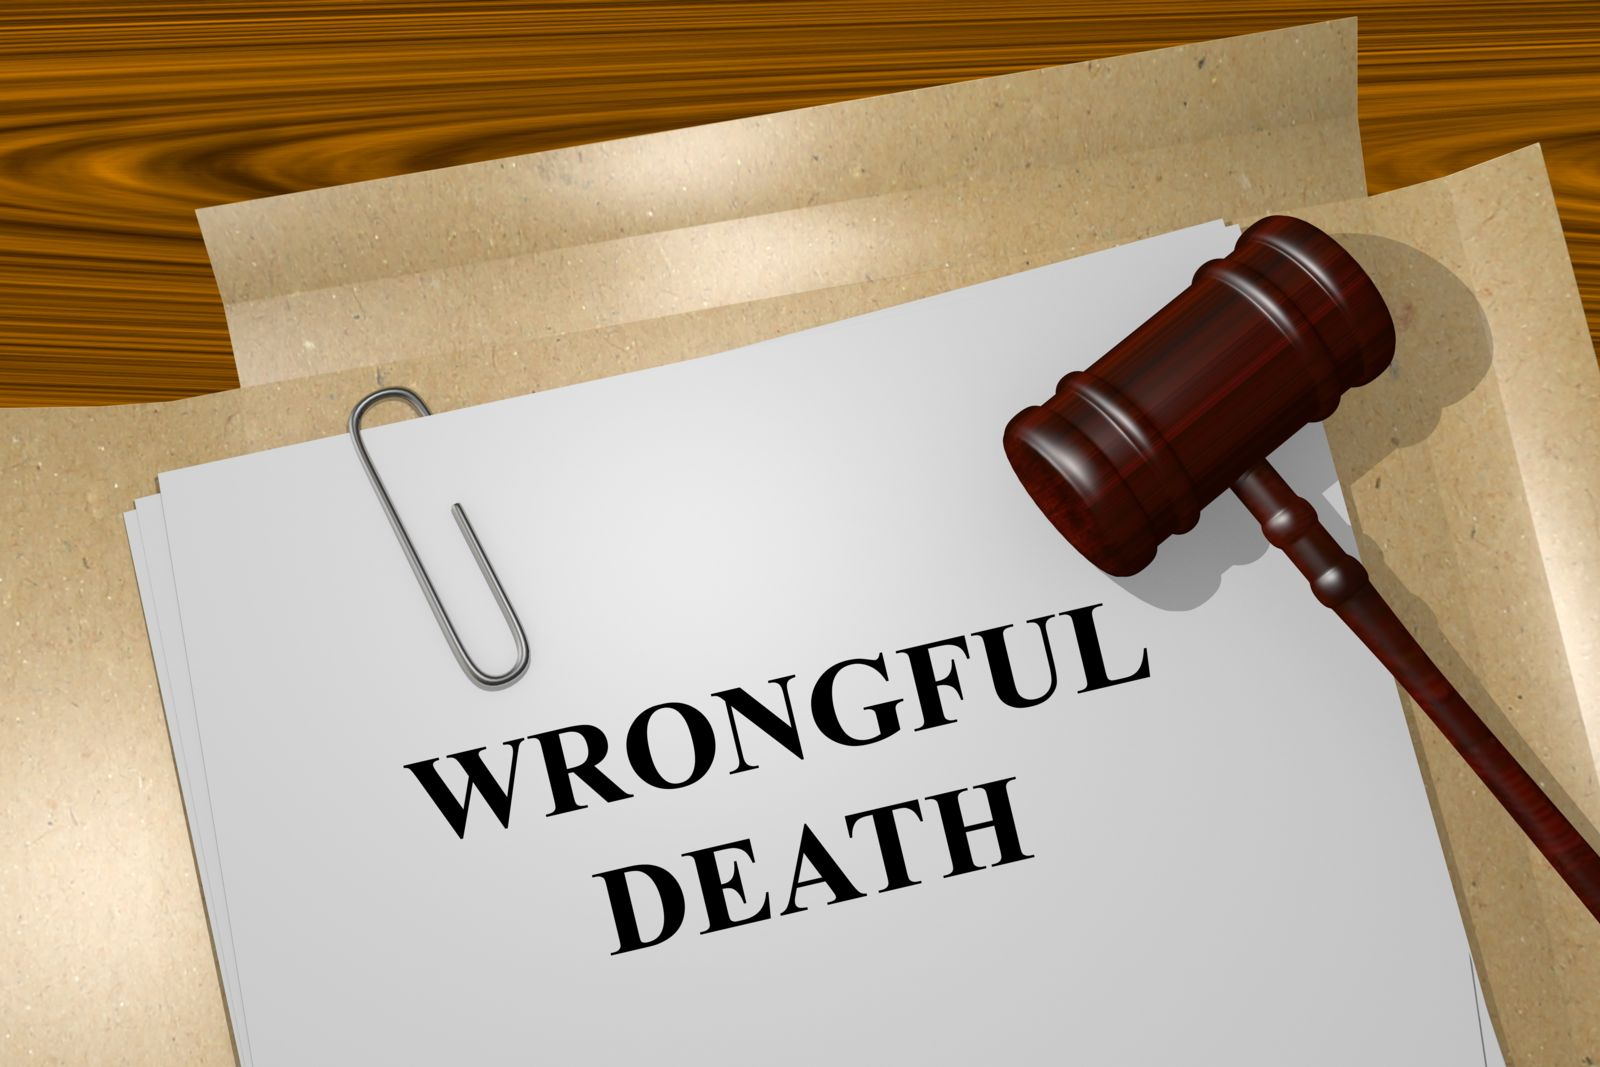 Wrongful Death Lawsuit Paperwork